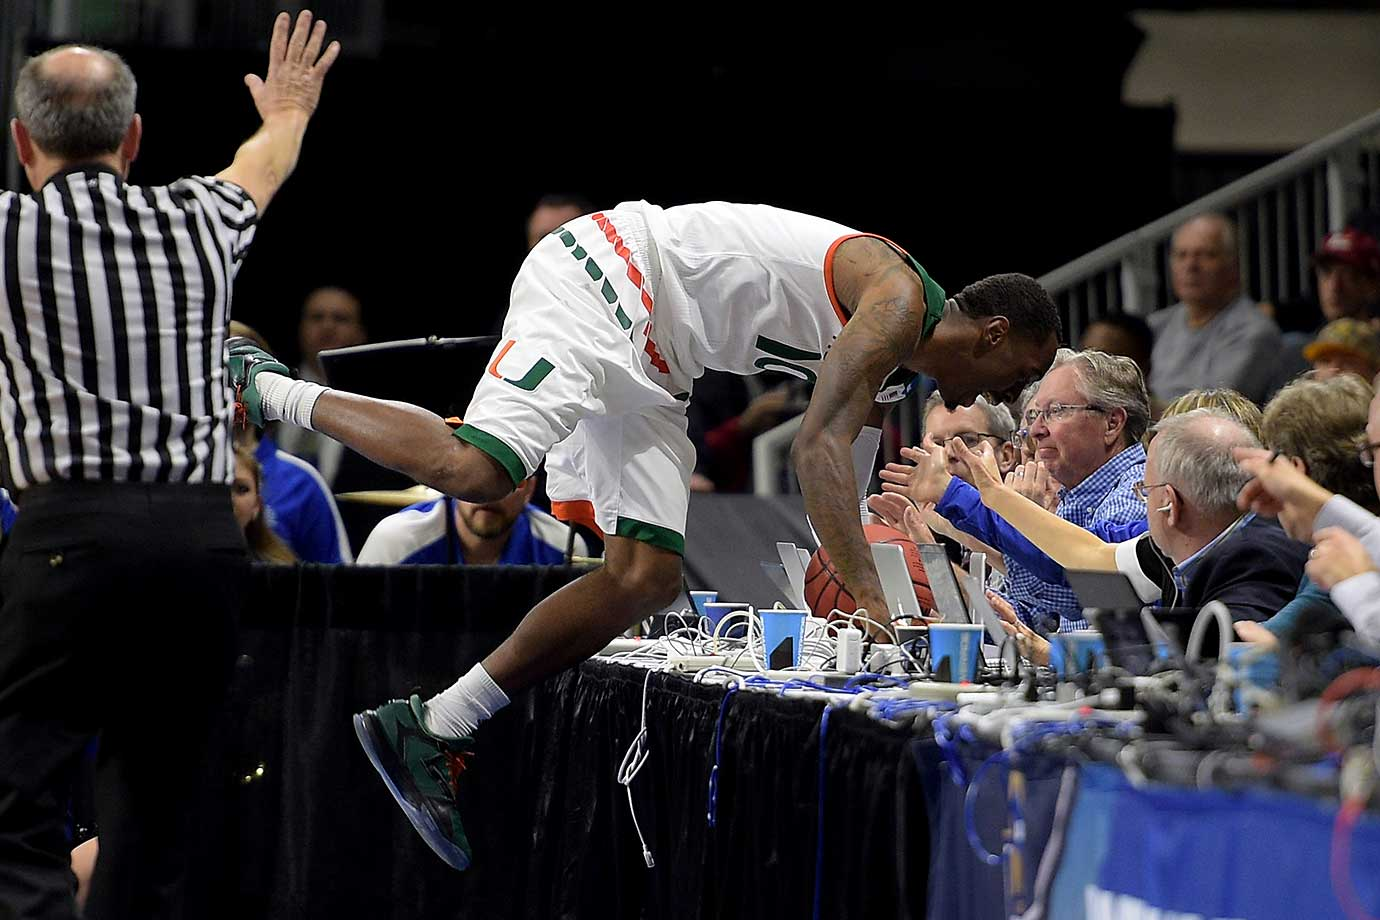 Sheldon McClellan of the Miami Hurricanes crashes into press row after chasing a loose ball.